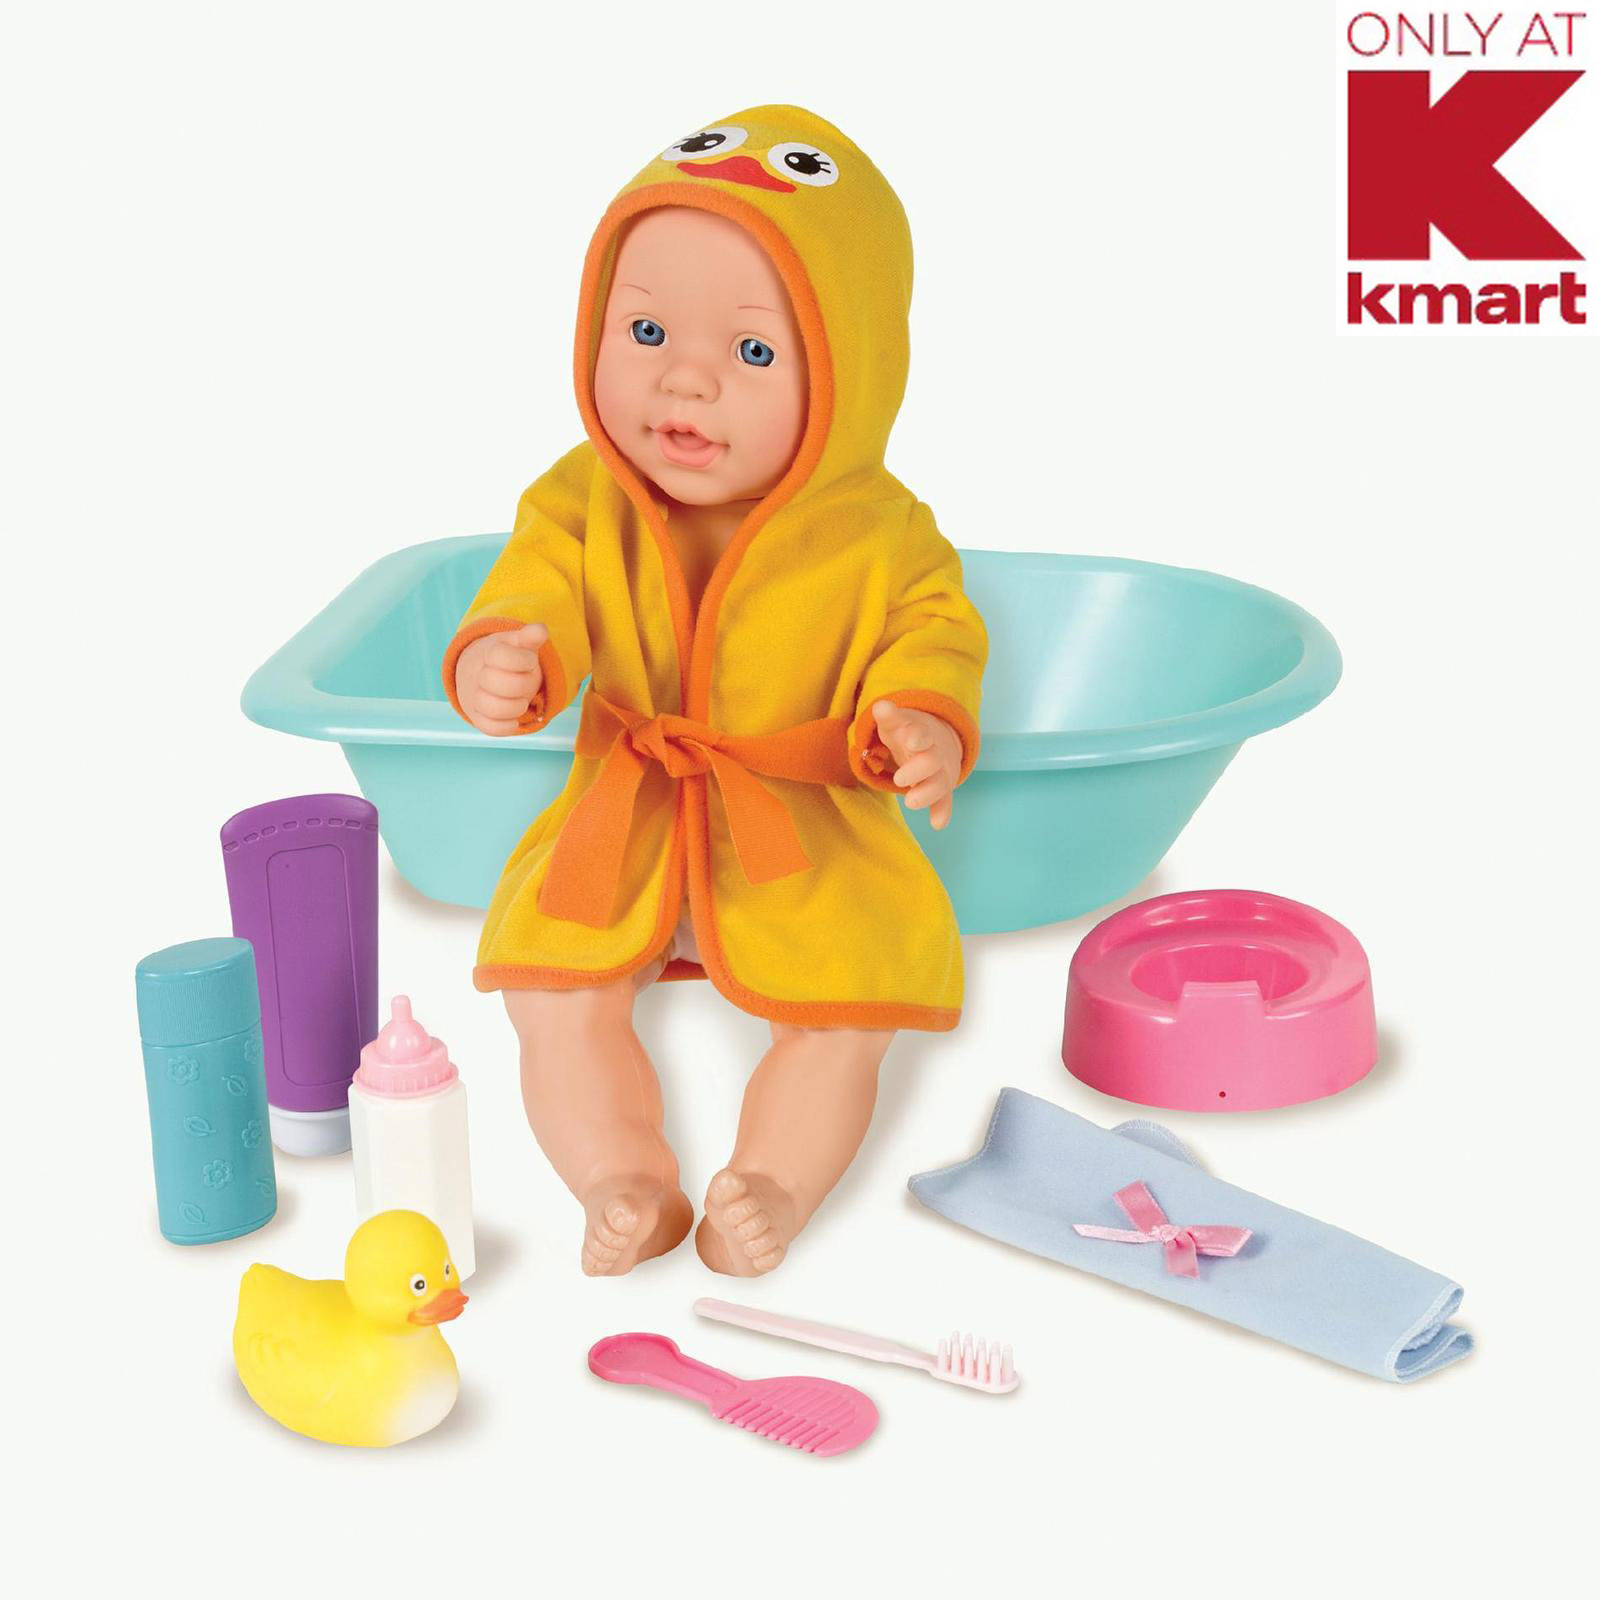 Just Kidz 15 Baby Doll With Bath Set